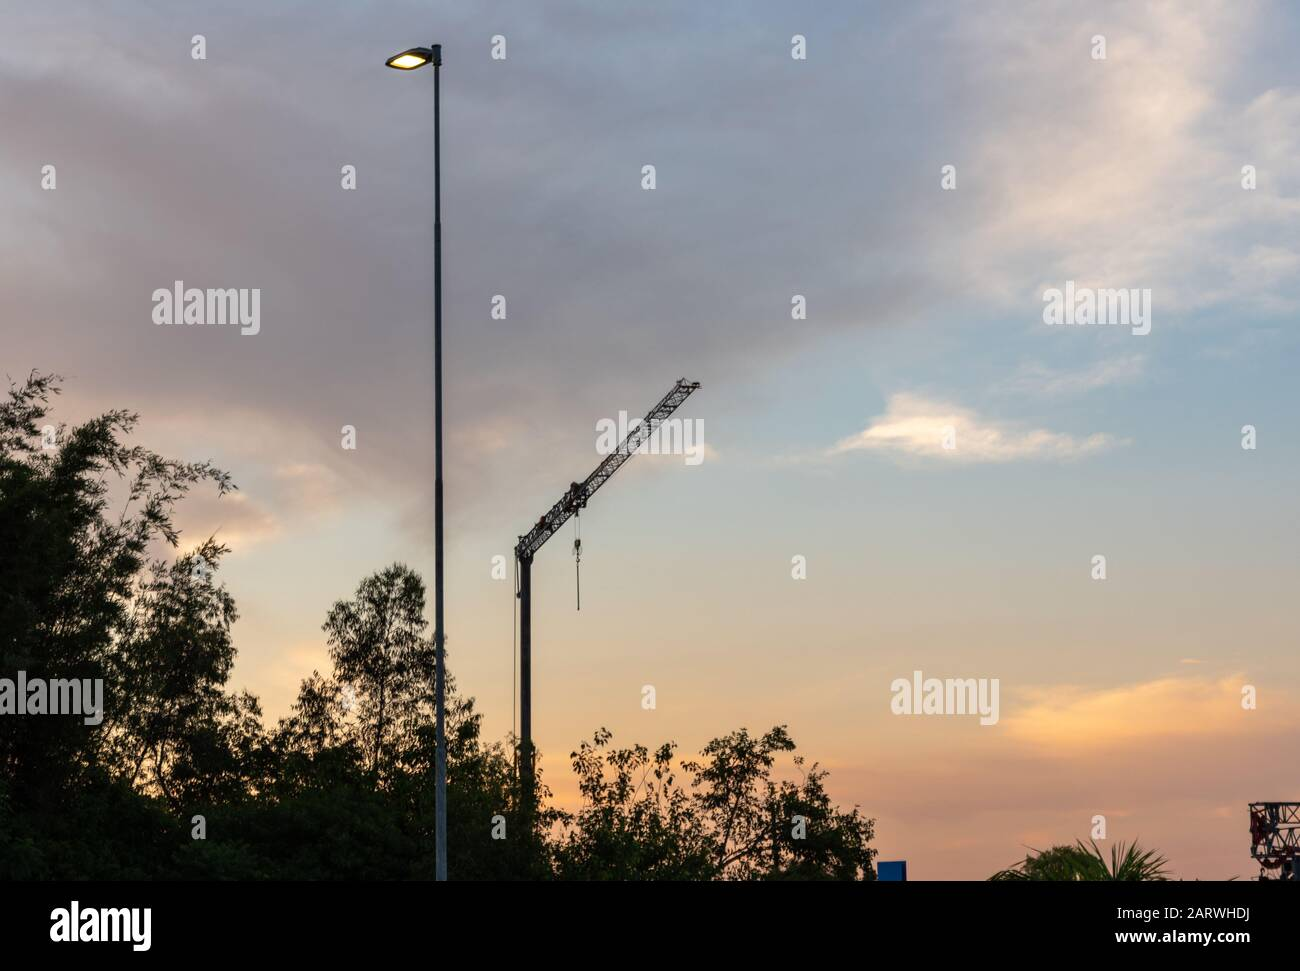 A power pole with light on cesa and the silhouette of a construction crane. Energy and architecture and engineering equipment. Stock Photo